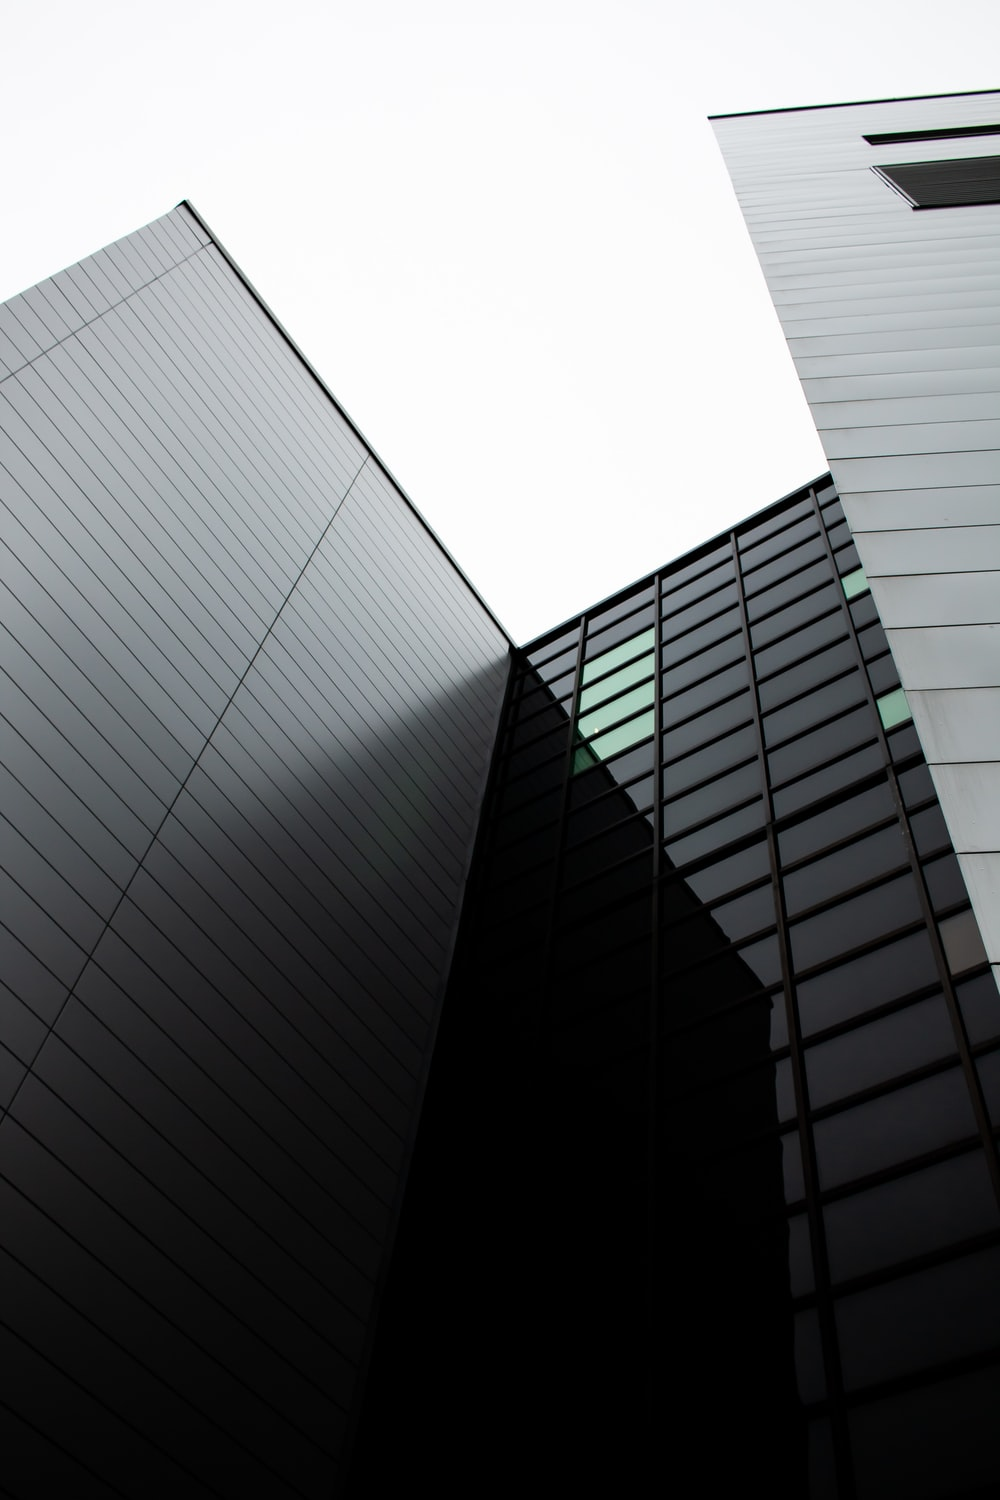 low-angle photography of clear glass walled buildings